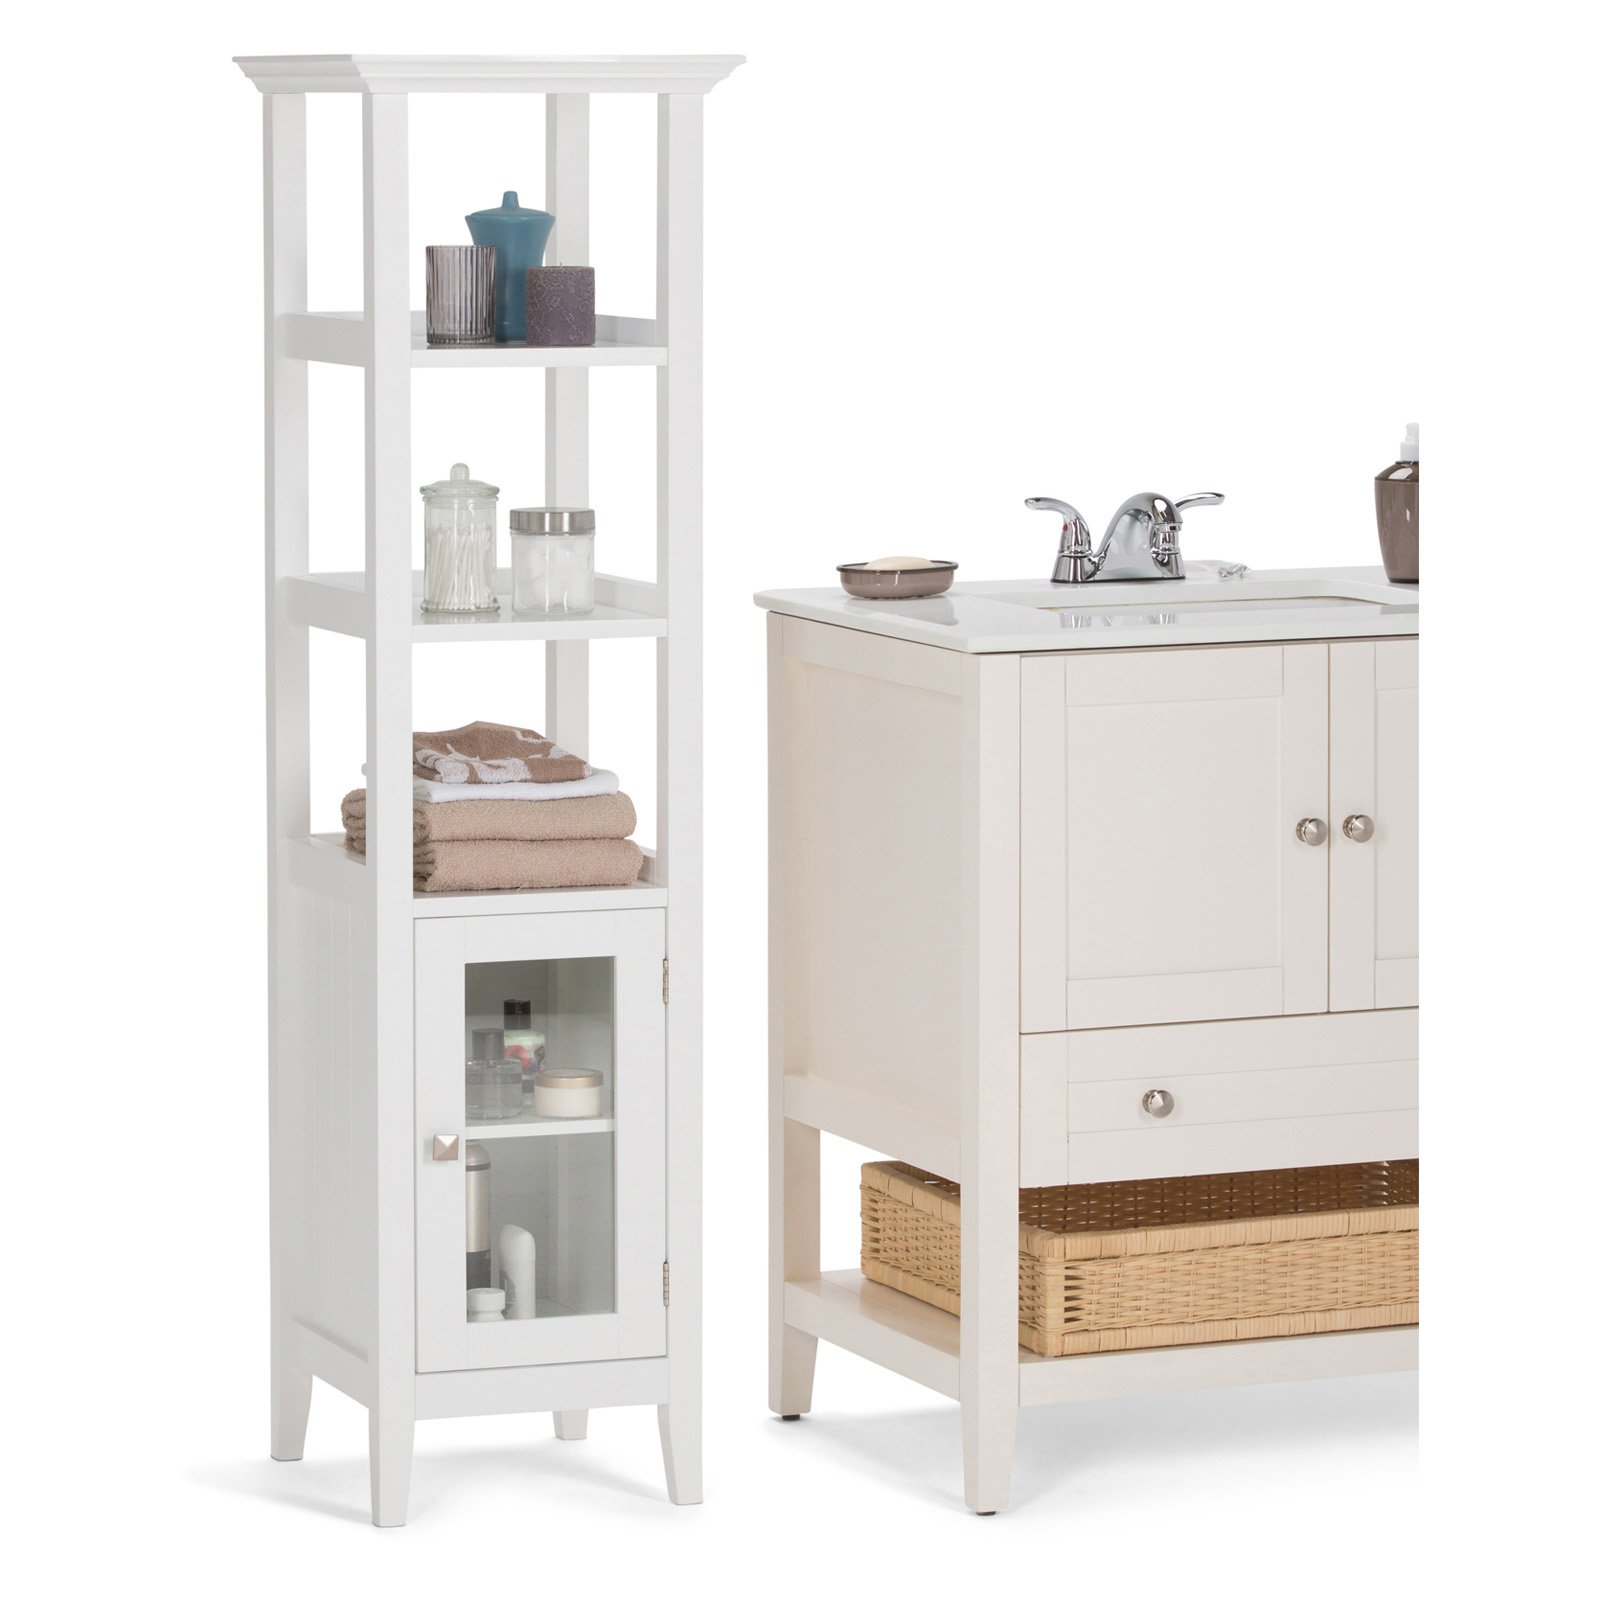 Simpli Home Acadian Bath Storage Tower